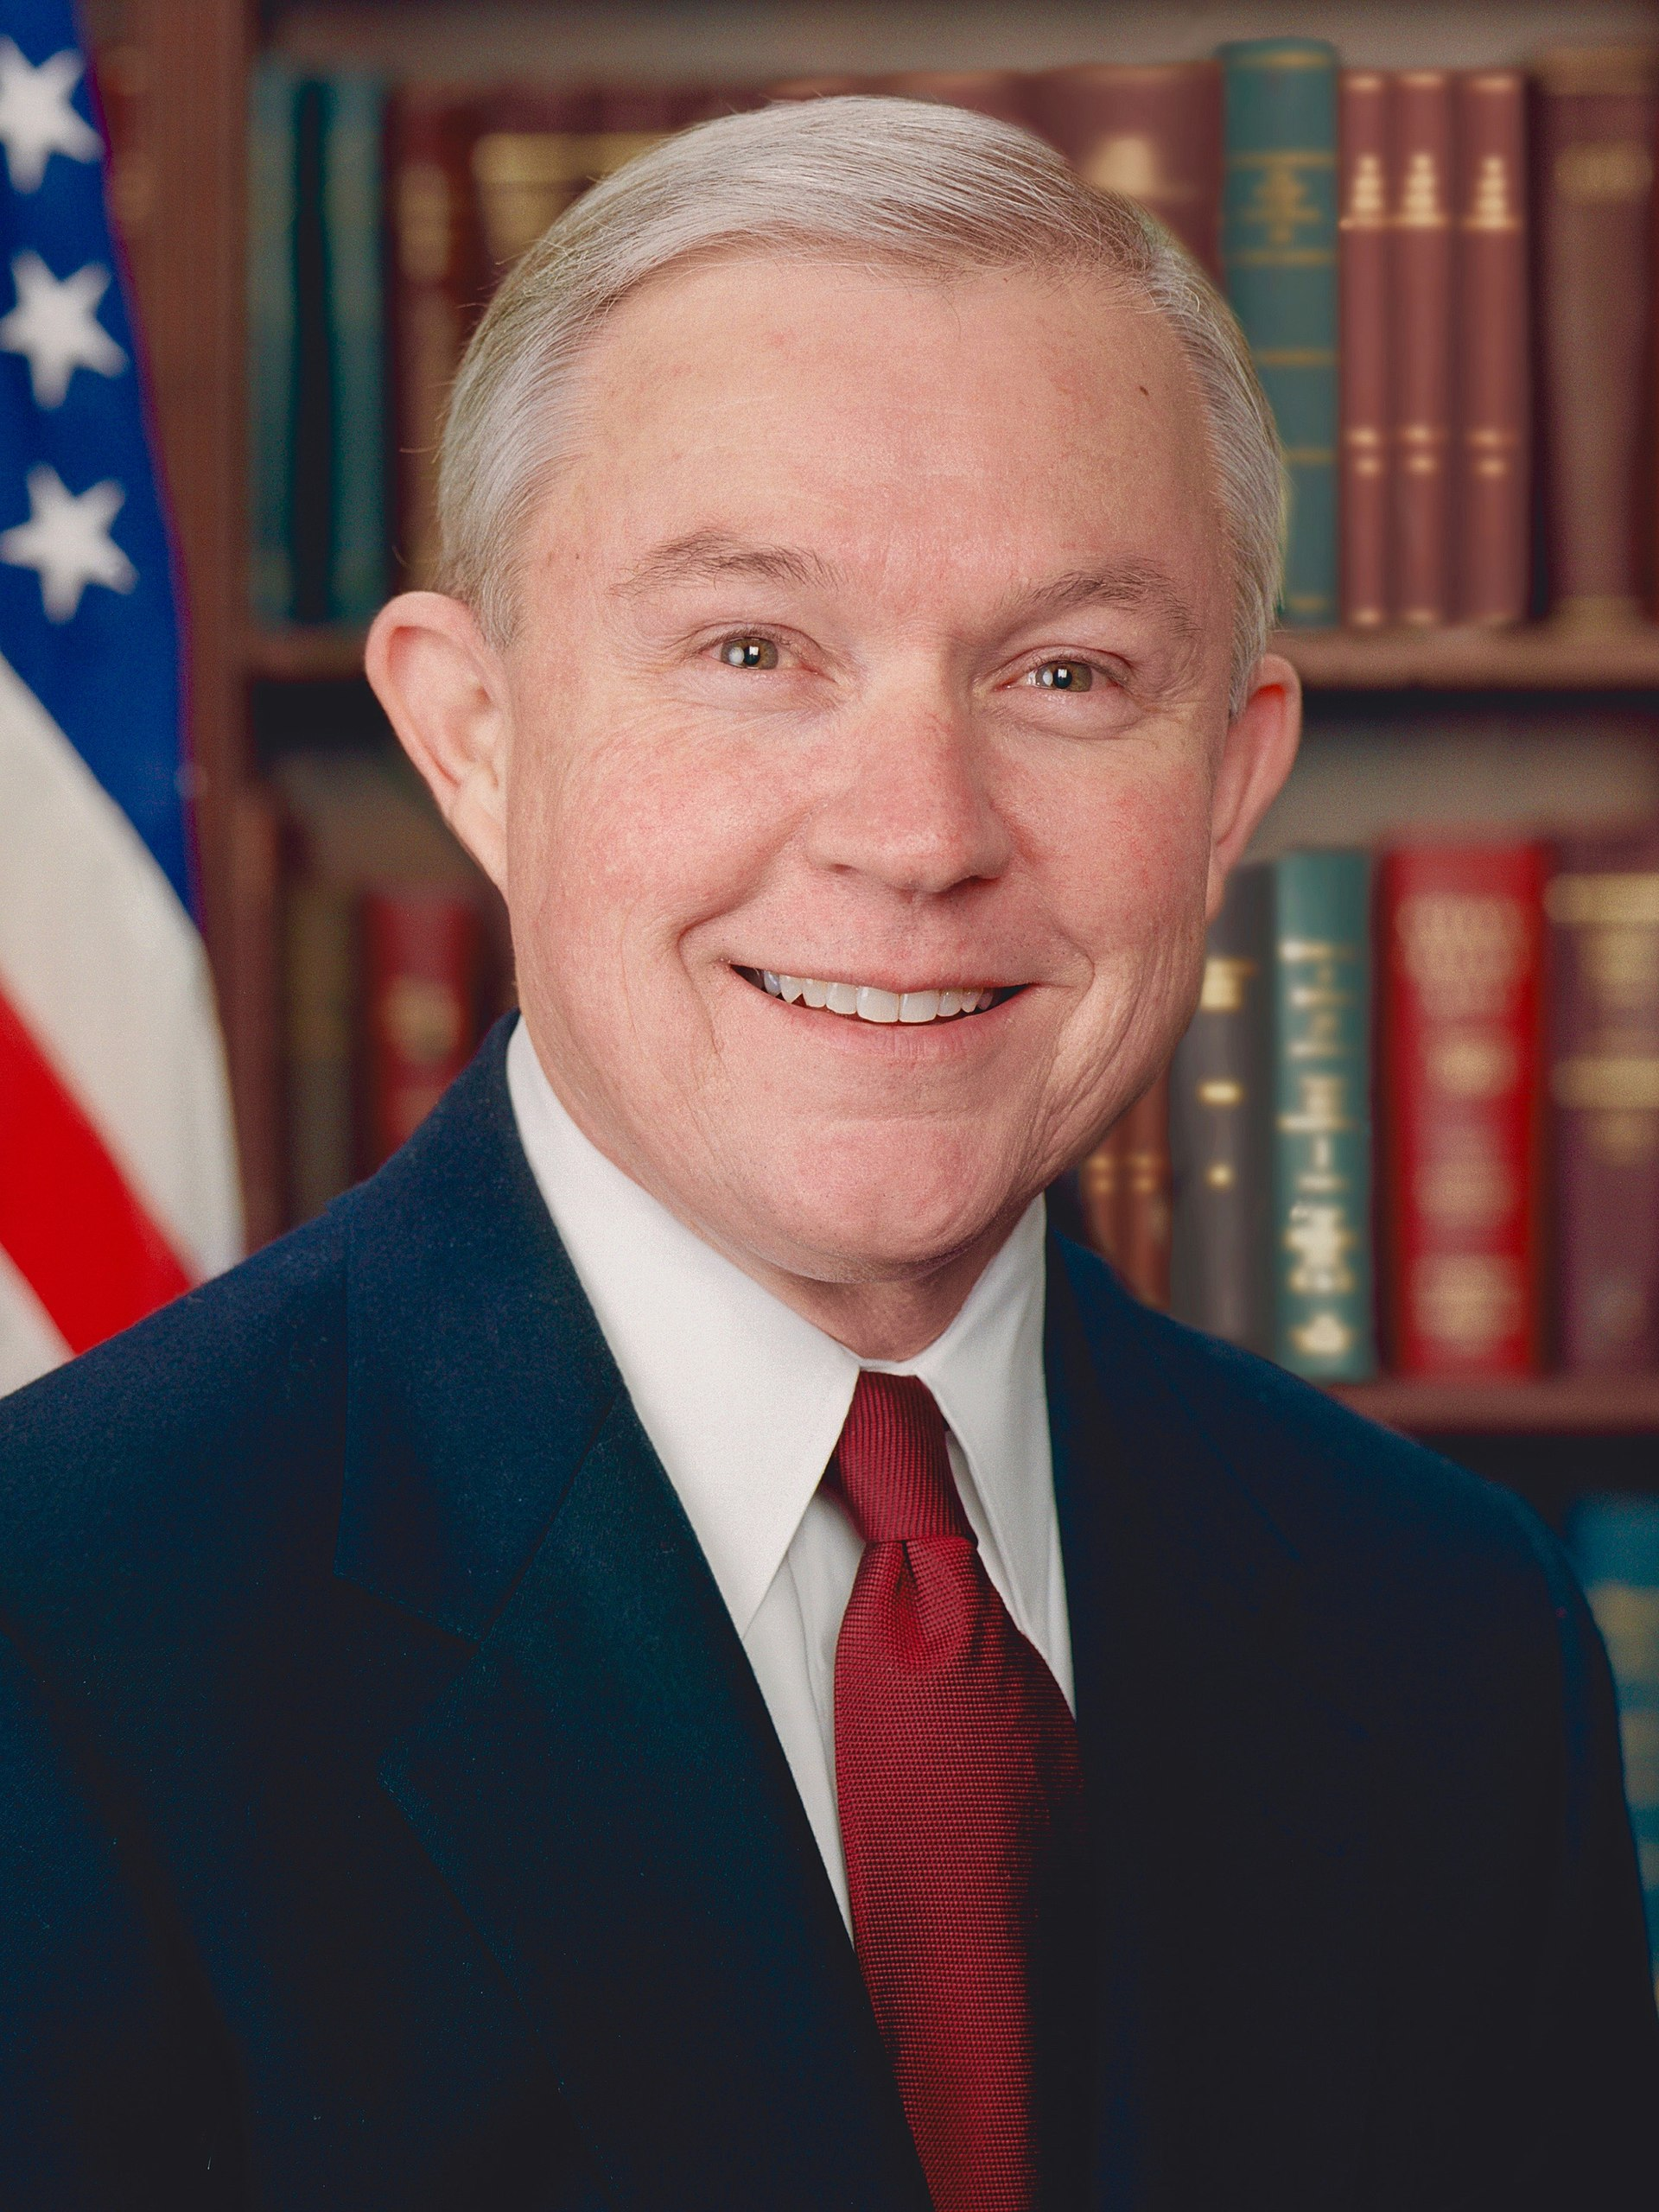 jeff sessions - photo #3